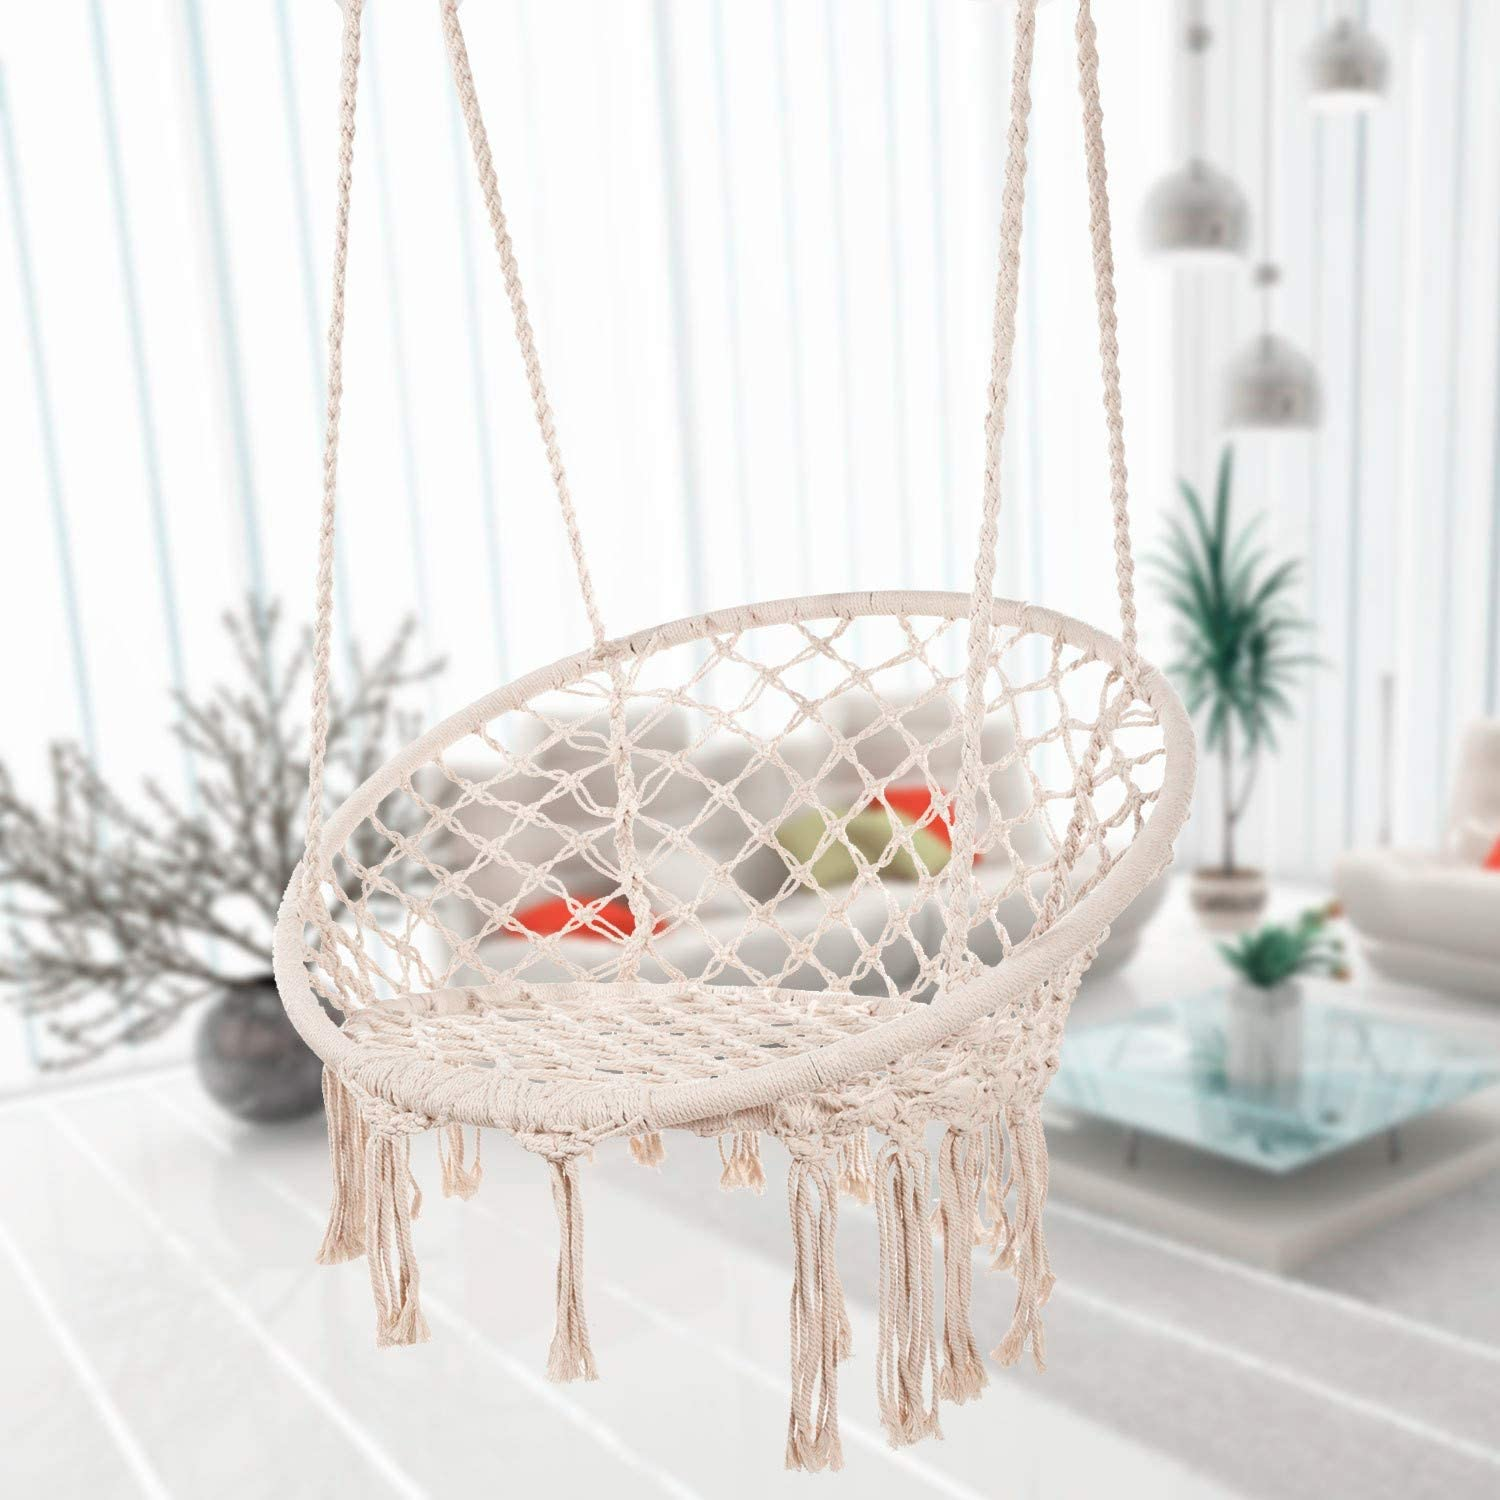 Amazon Com Caromy Hammock Chair Macrame Swing Hanging Lounge Mesh Chair Durable Cotton Rope Swing For Bedroom Patio Garden Deck Yard Max Capacity 265 Lbs Beige Kitchen Dining